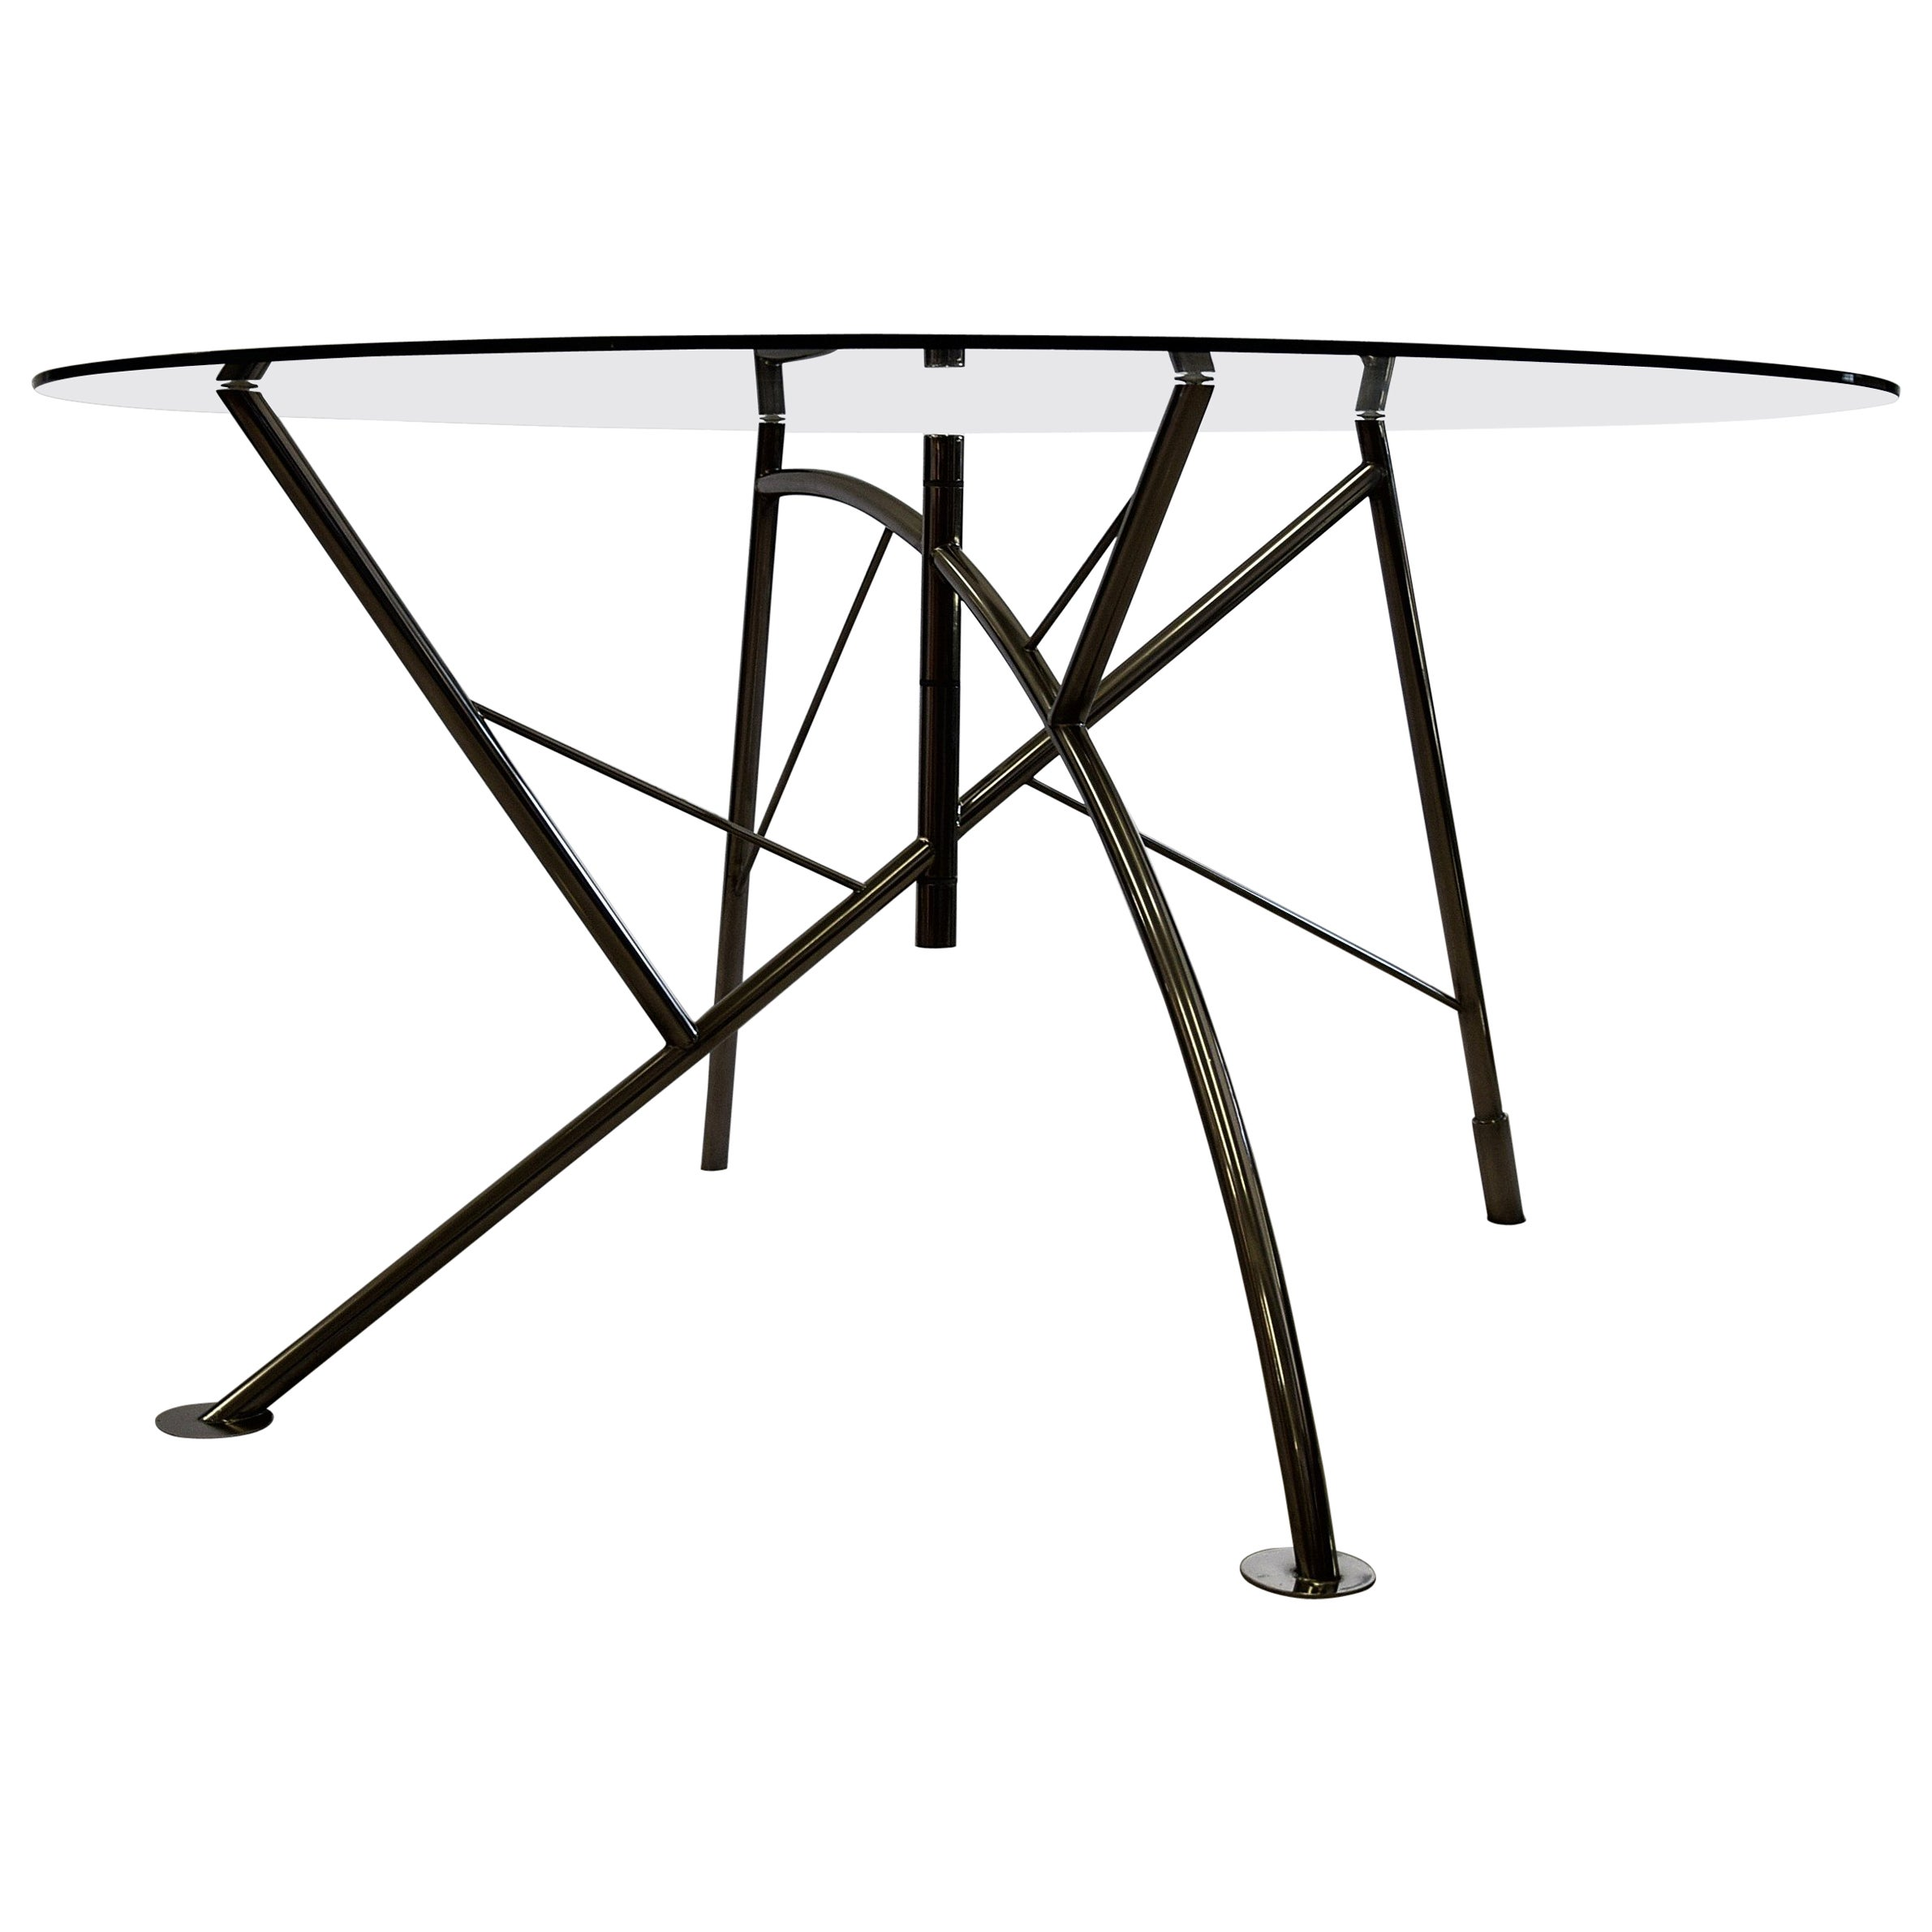 philippe starck dole melipone dining table first edition by xo for Country Interior Decor philippe starck dole melipone dining table first edition by xo for sale at 1stdibs